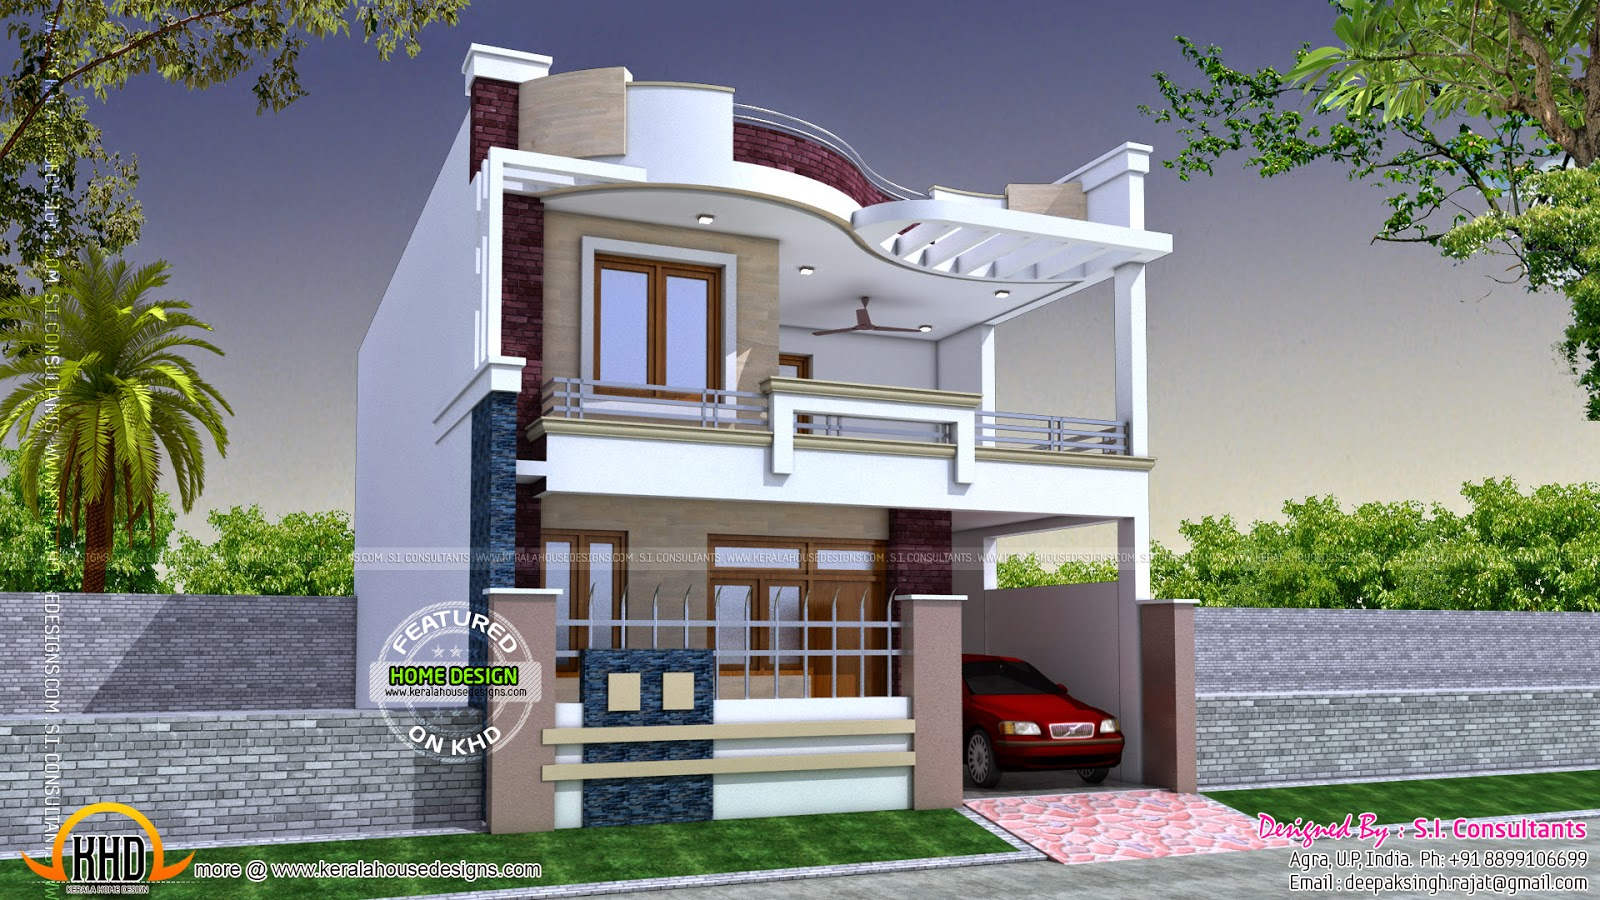 Modern indian home design kerala home design and floor plans for Indian house portico models